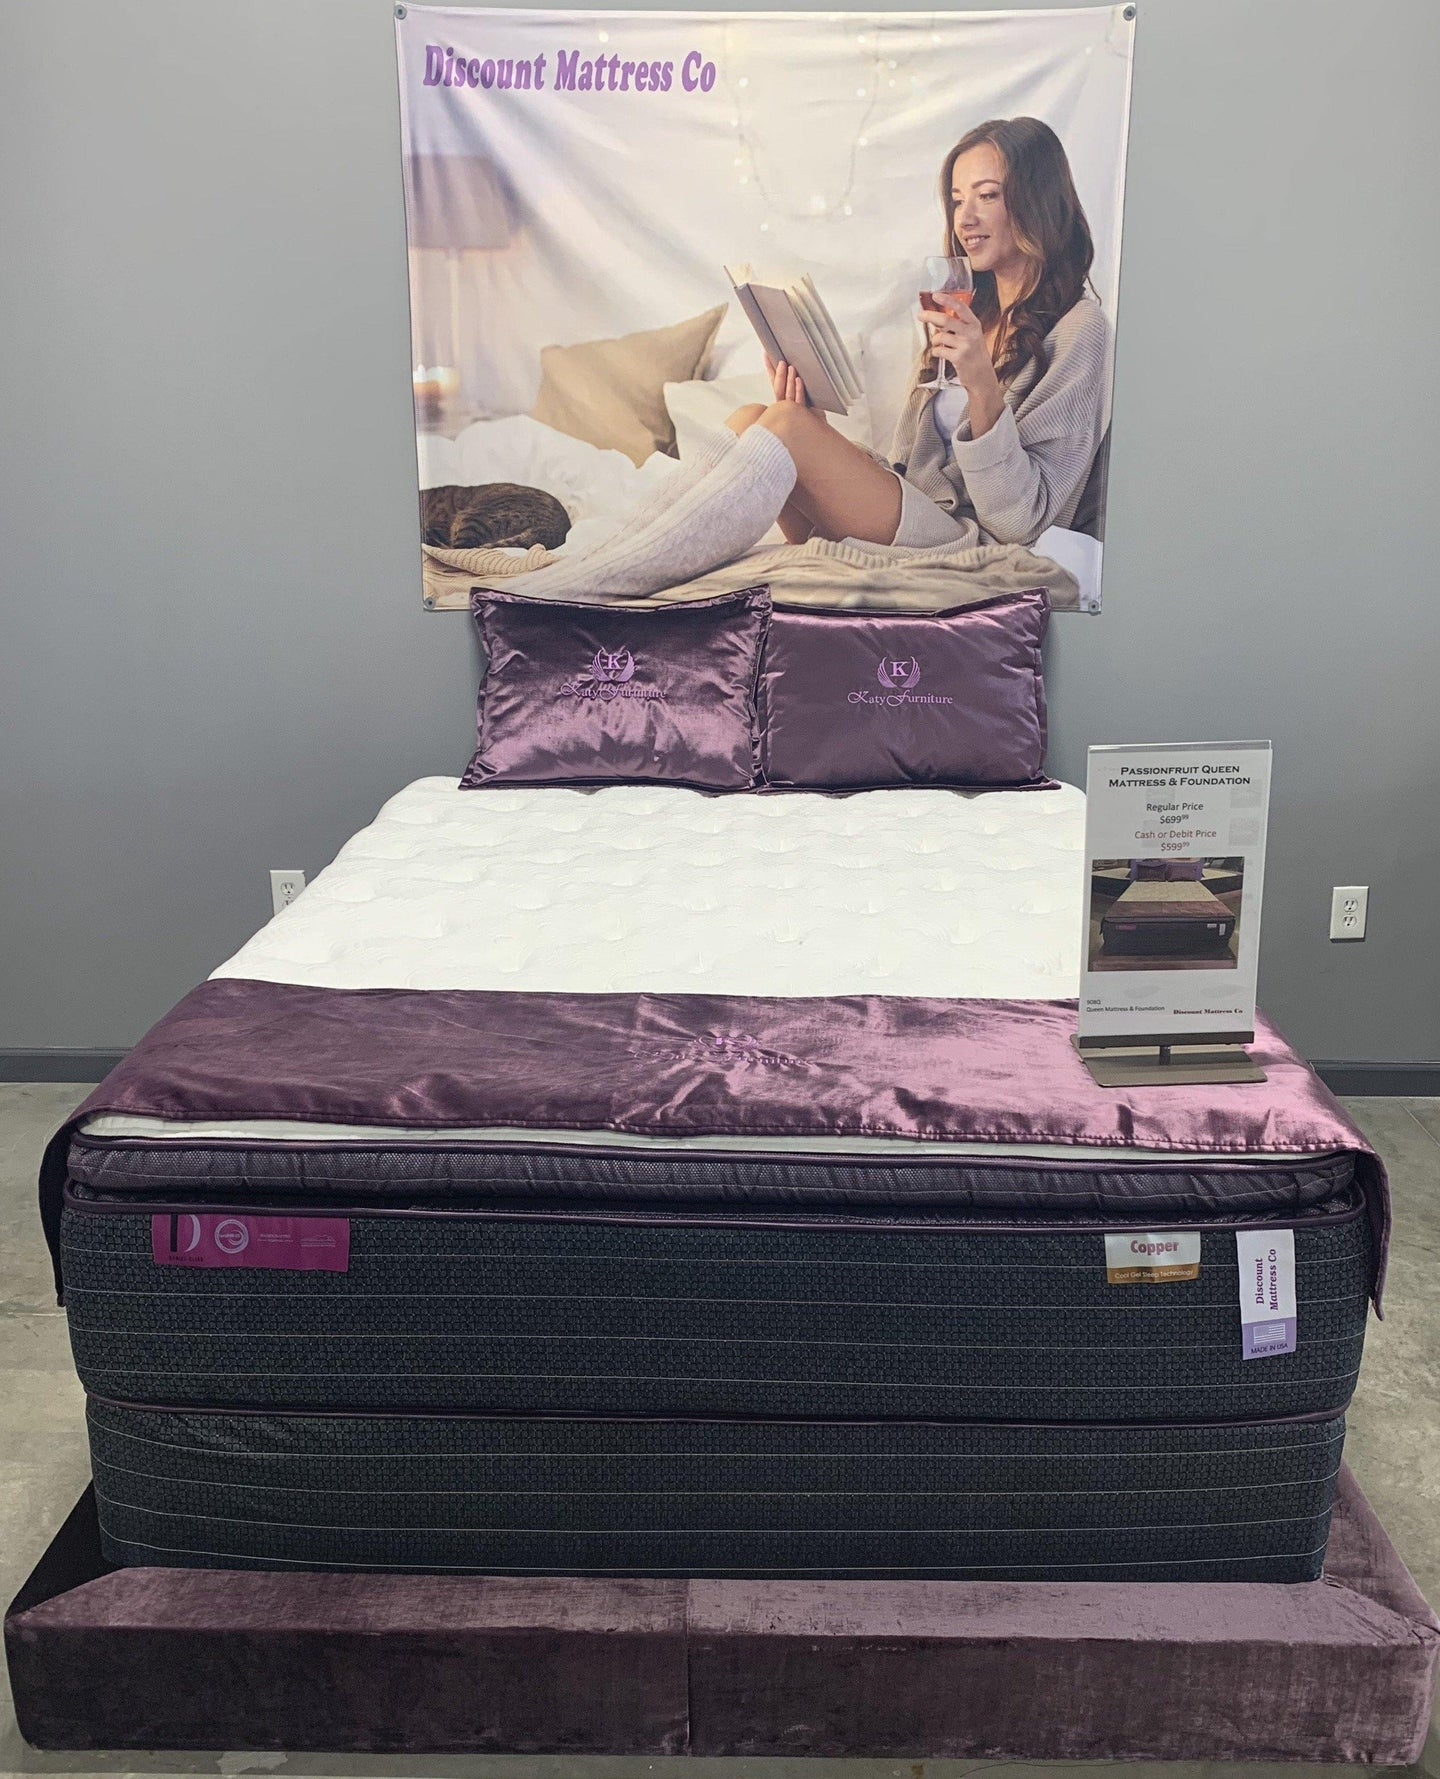 Passionfruit Mattress and Foundation - Discount Mattress Co